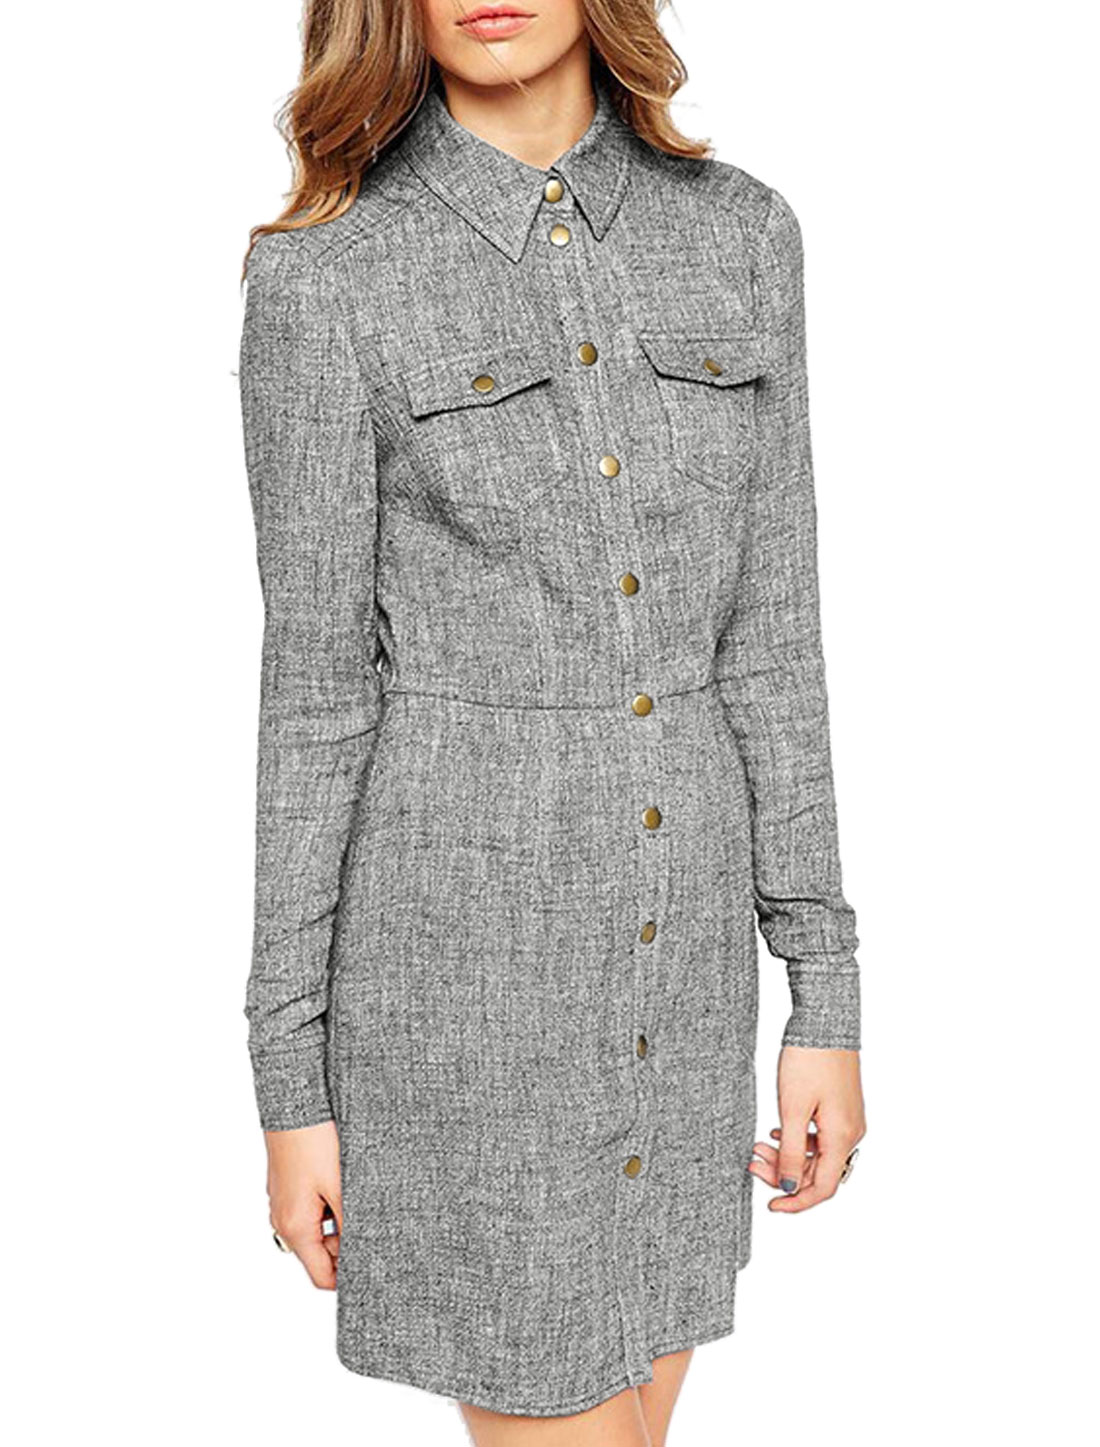 Women Point Collar Snap Buttons Closure Shirt Dress Gray XS